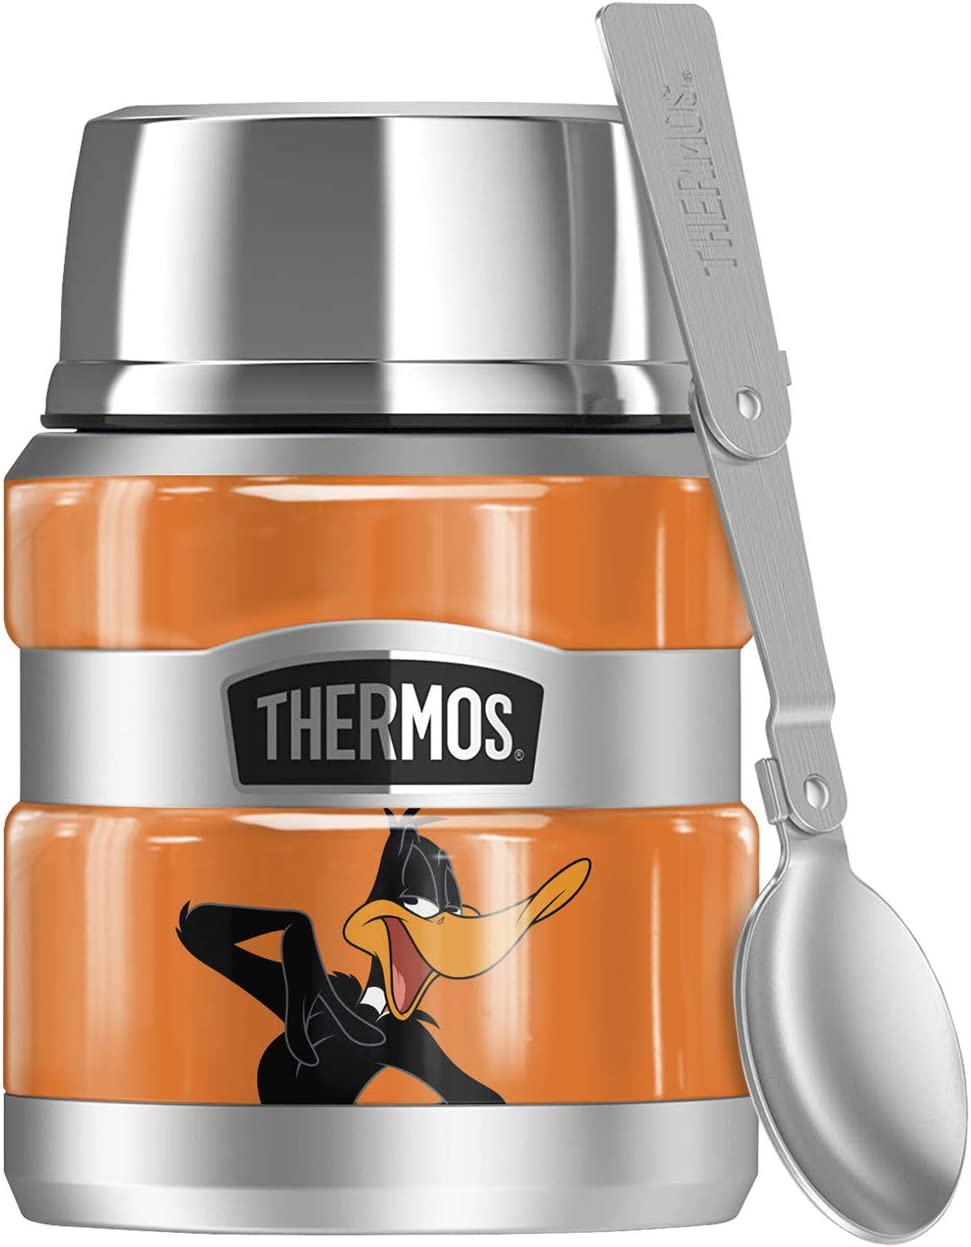 Looney Tunes Daffy Duck, THERMOS STAINLESS KING Stainless Steel Food Jar with Folding Spoon, Vacuum insulated & Double Wall, 16oz